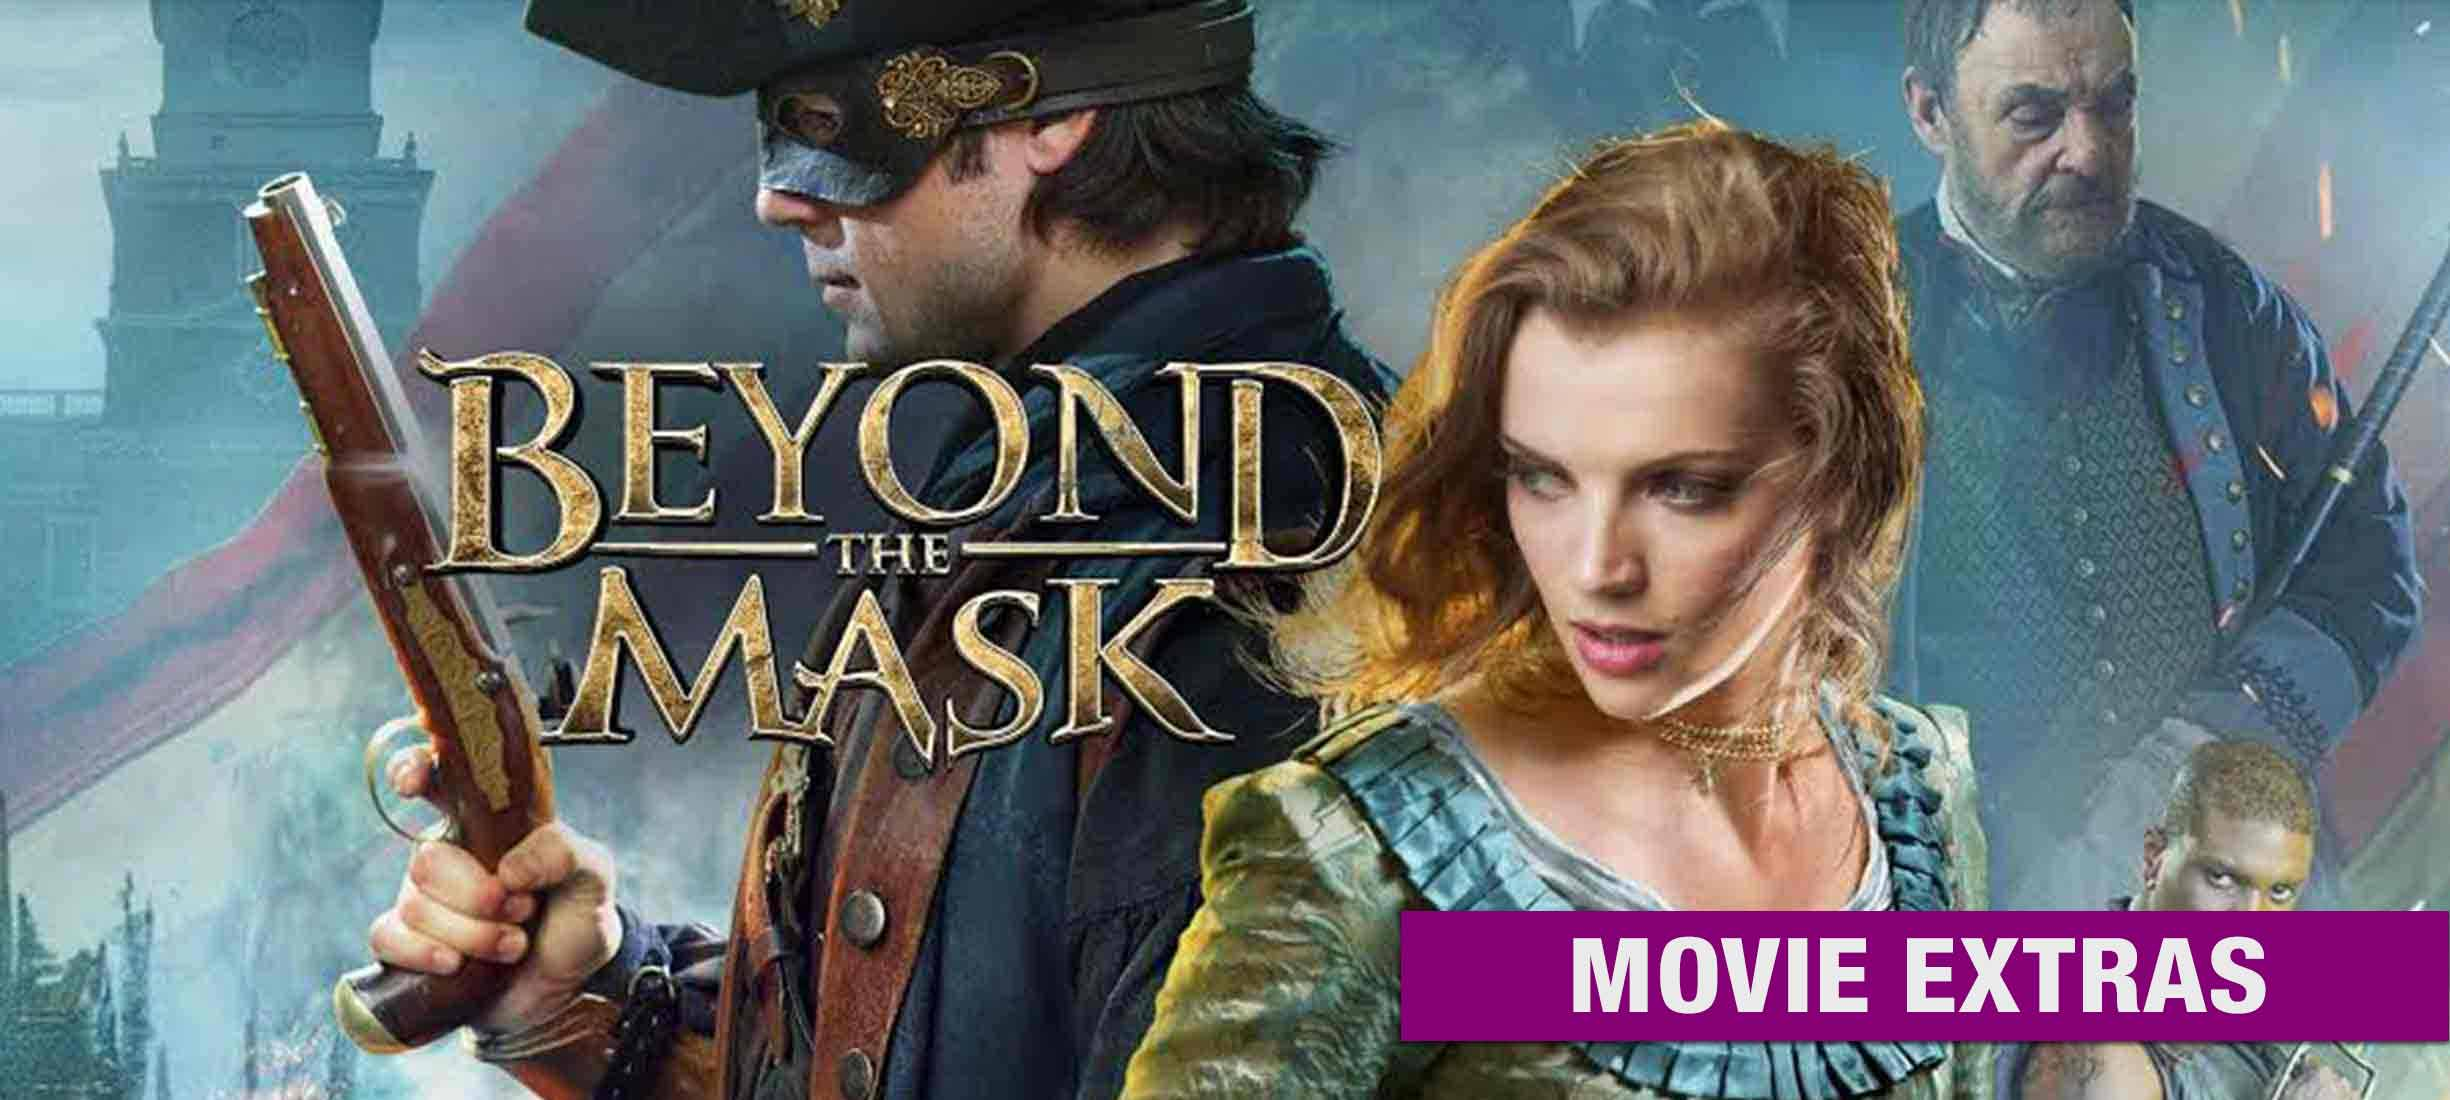 Beyond the Mask: Trailer & Extras